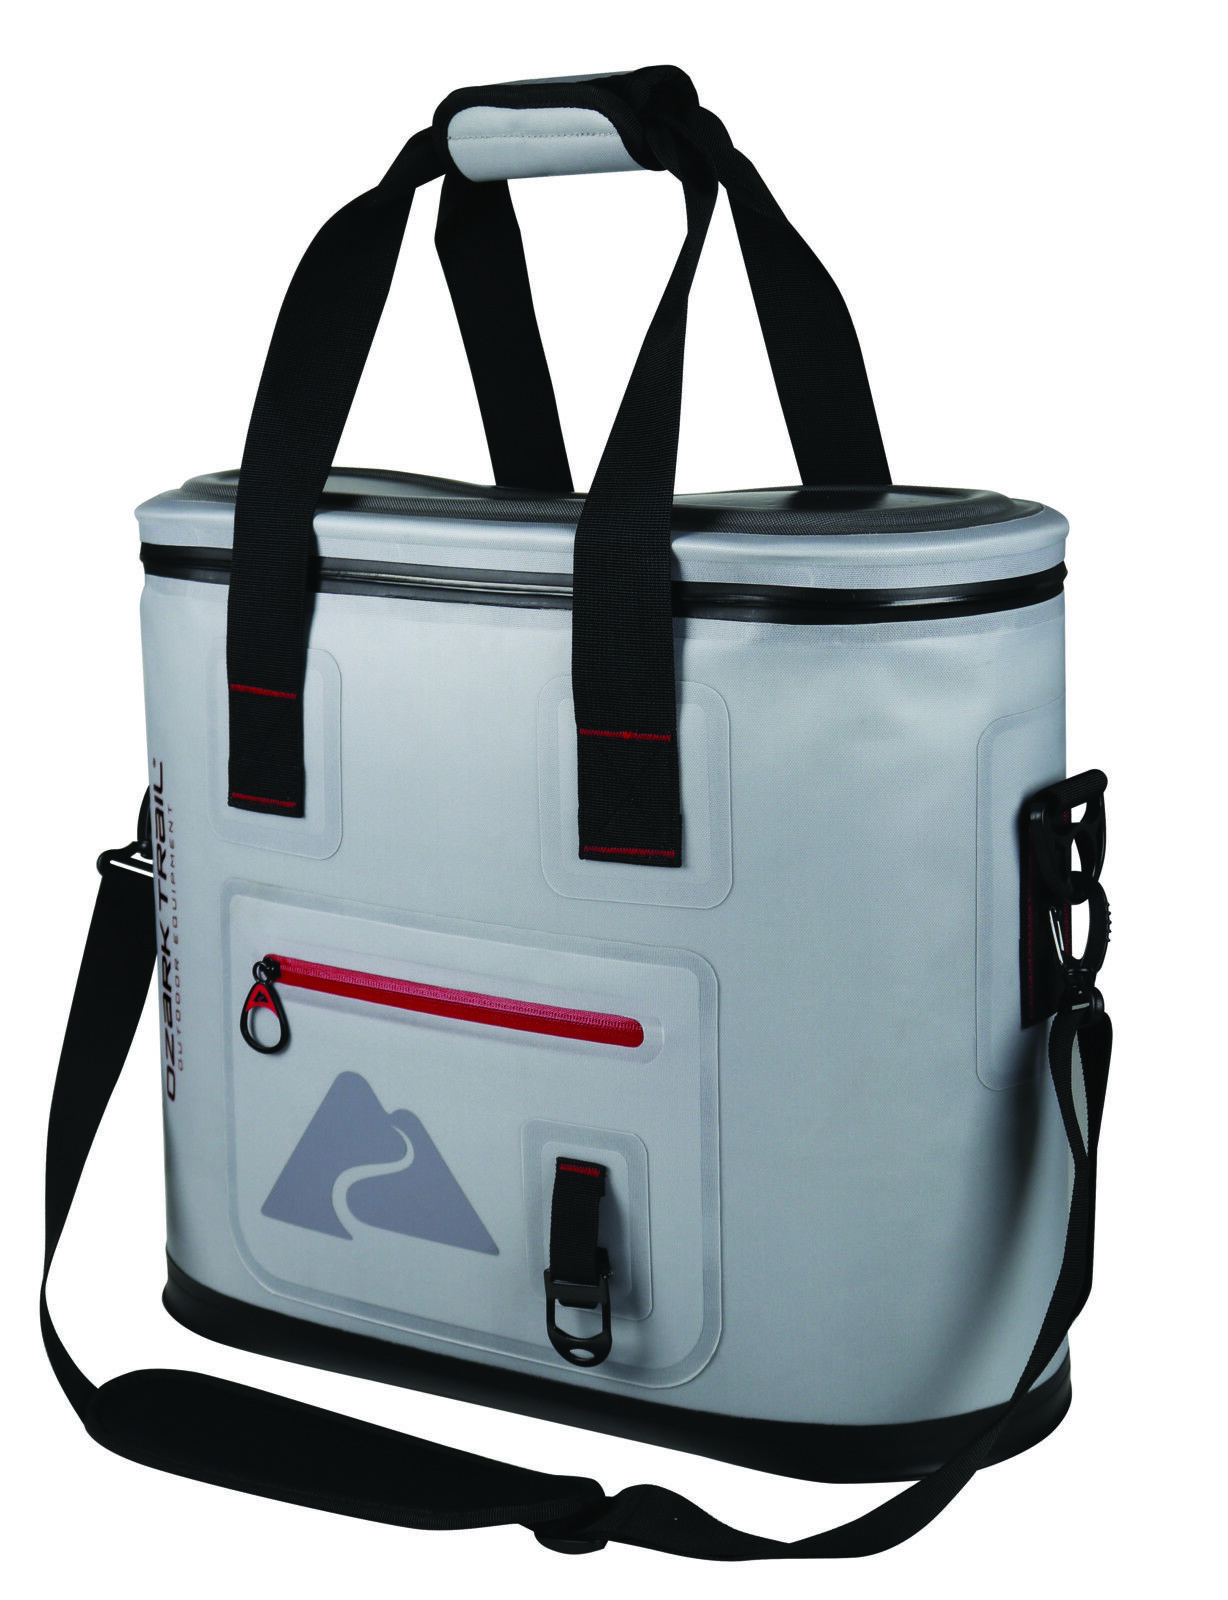 Portable Outdoor Bag Sealed Leak-tight Cooler Heat Welded Body 30 Can Capacity